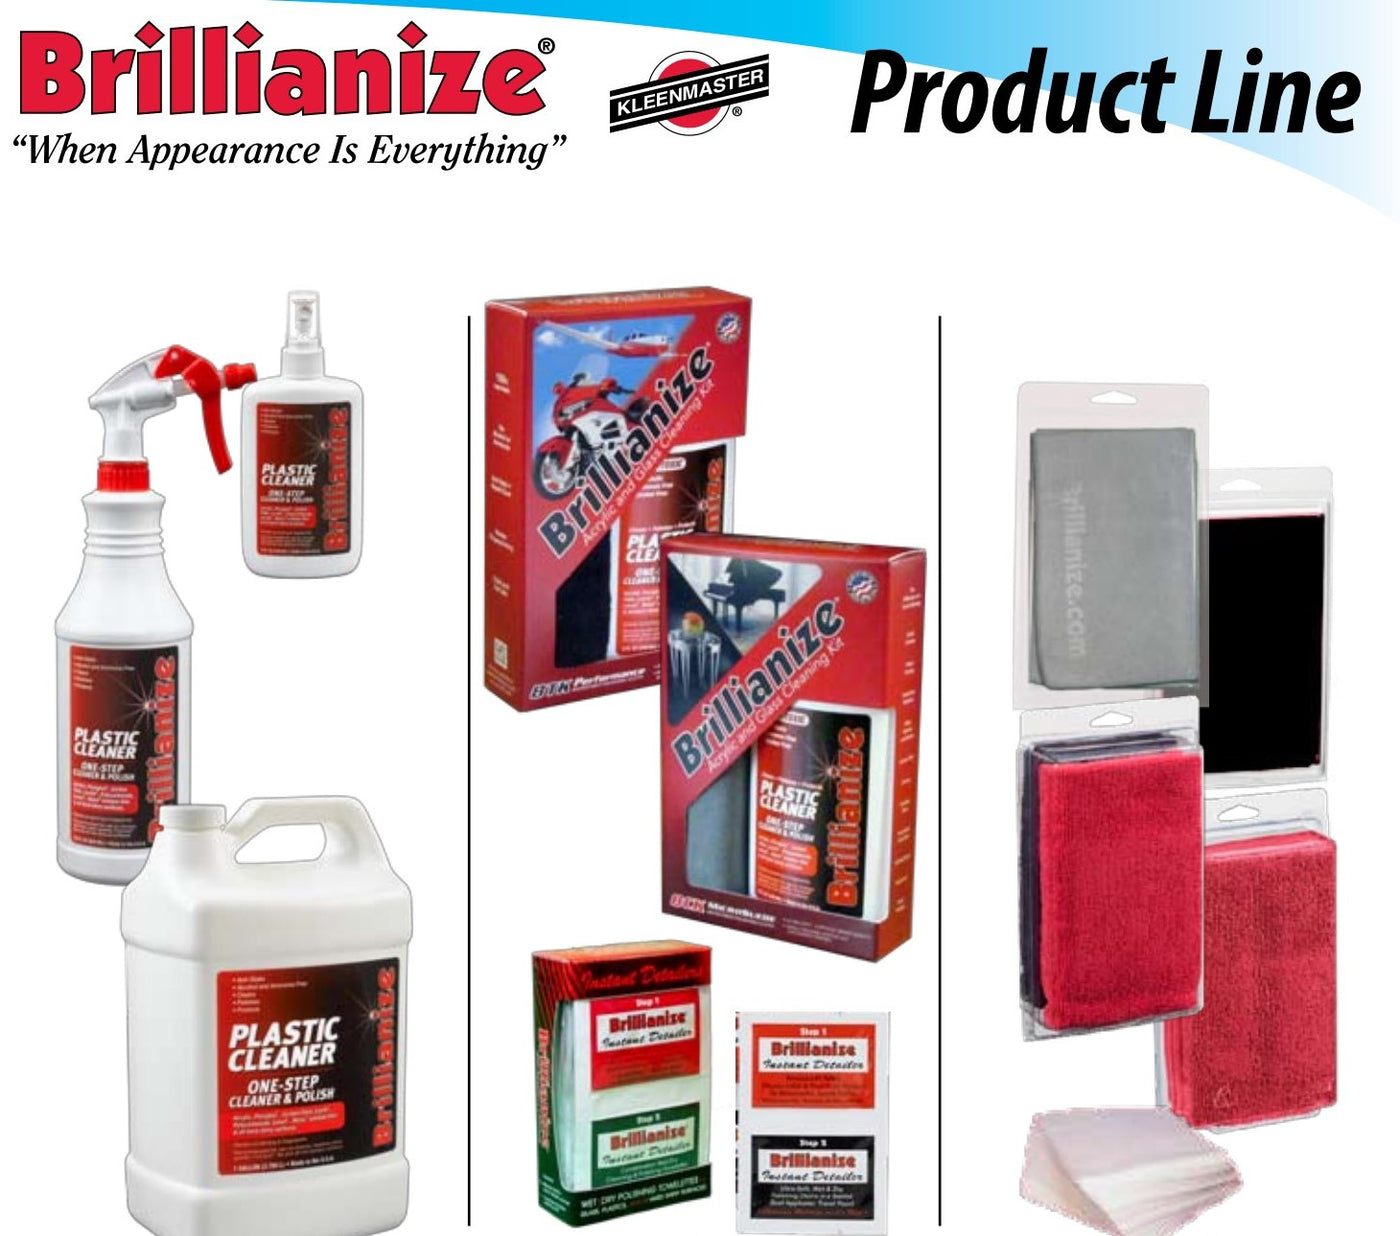 Brillianize acrylic cleaner and plastic polish range